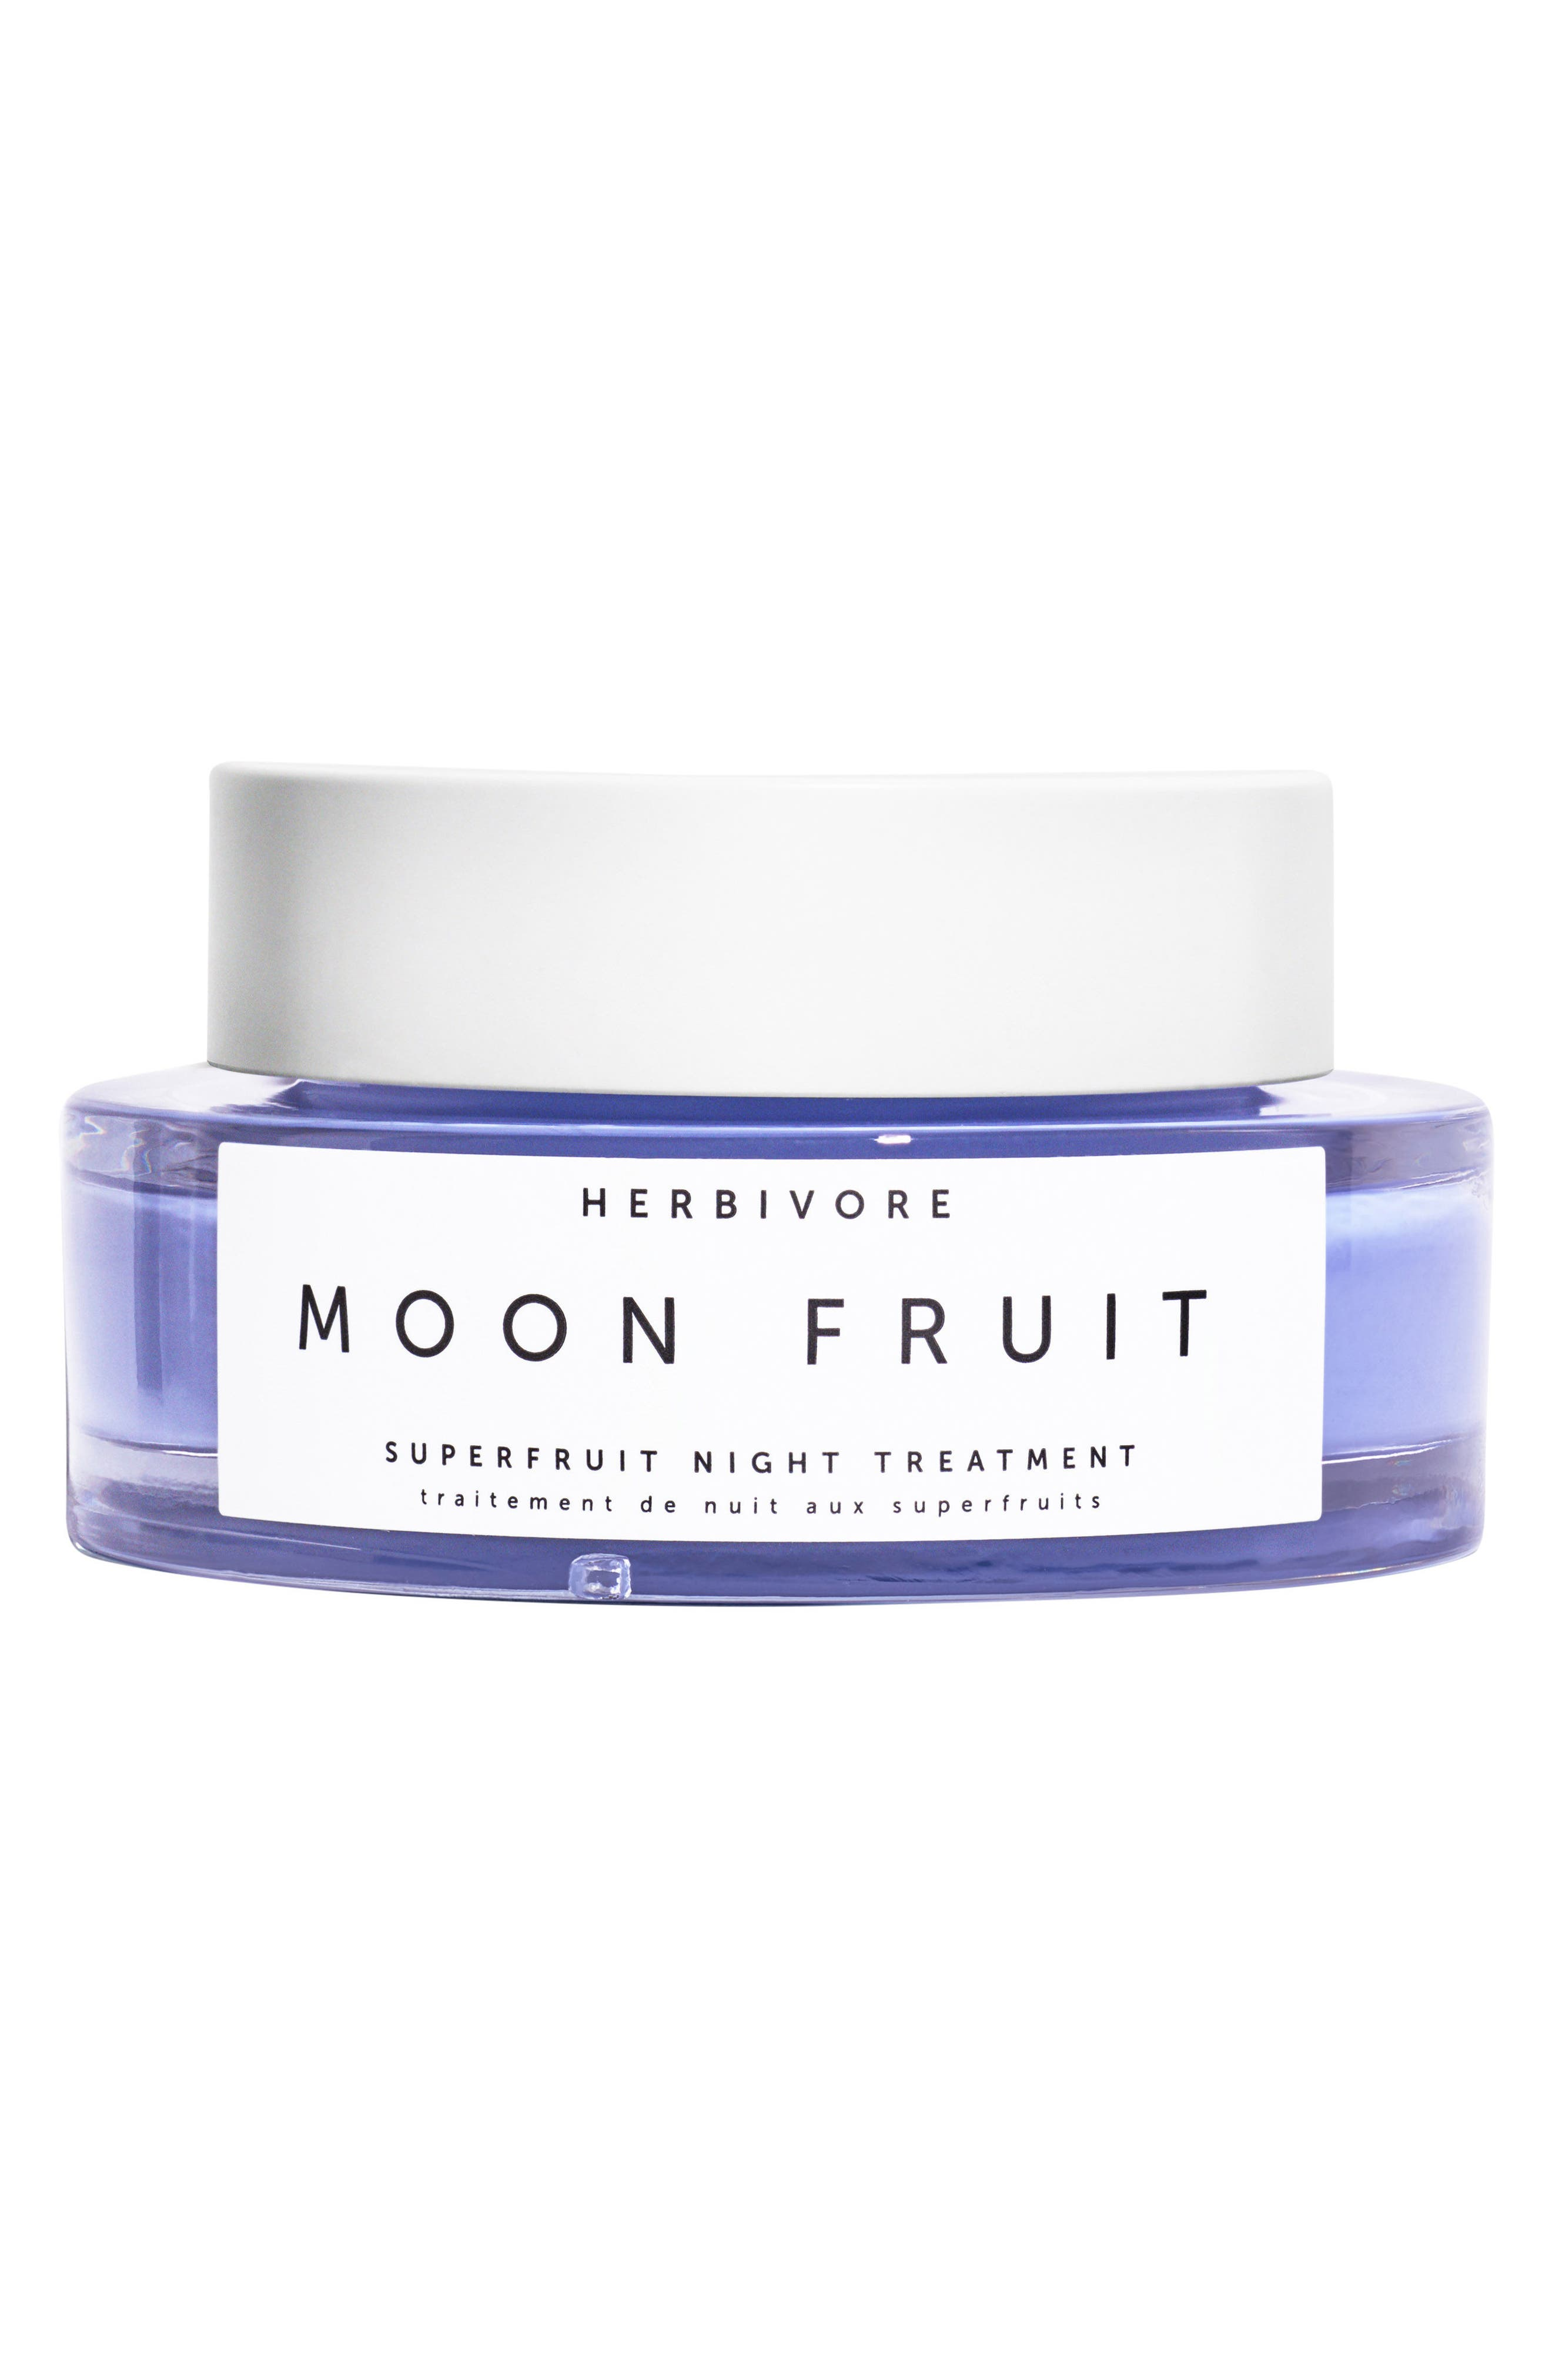 Moon Fruit Superfruit Night Treatment,                             Main thumbnail 1, color,                             Lavender